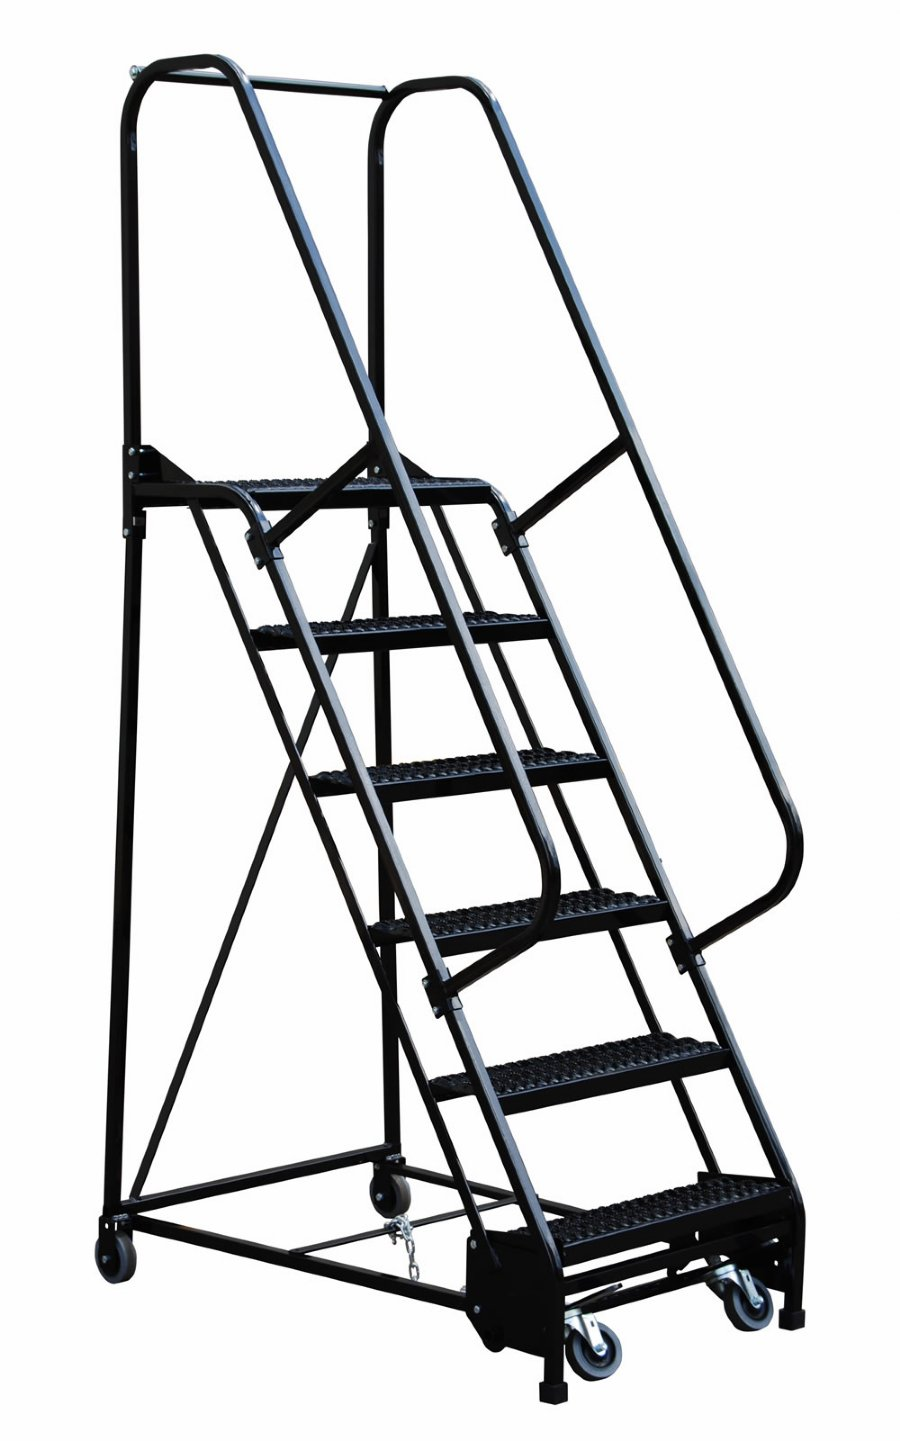 4 Step Esd Safe Portable Warehouse Ladder